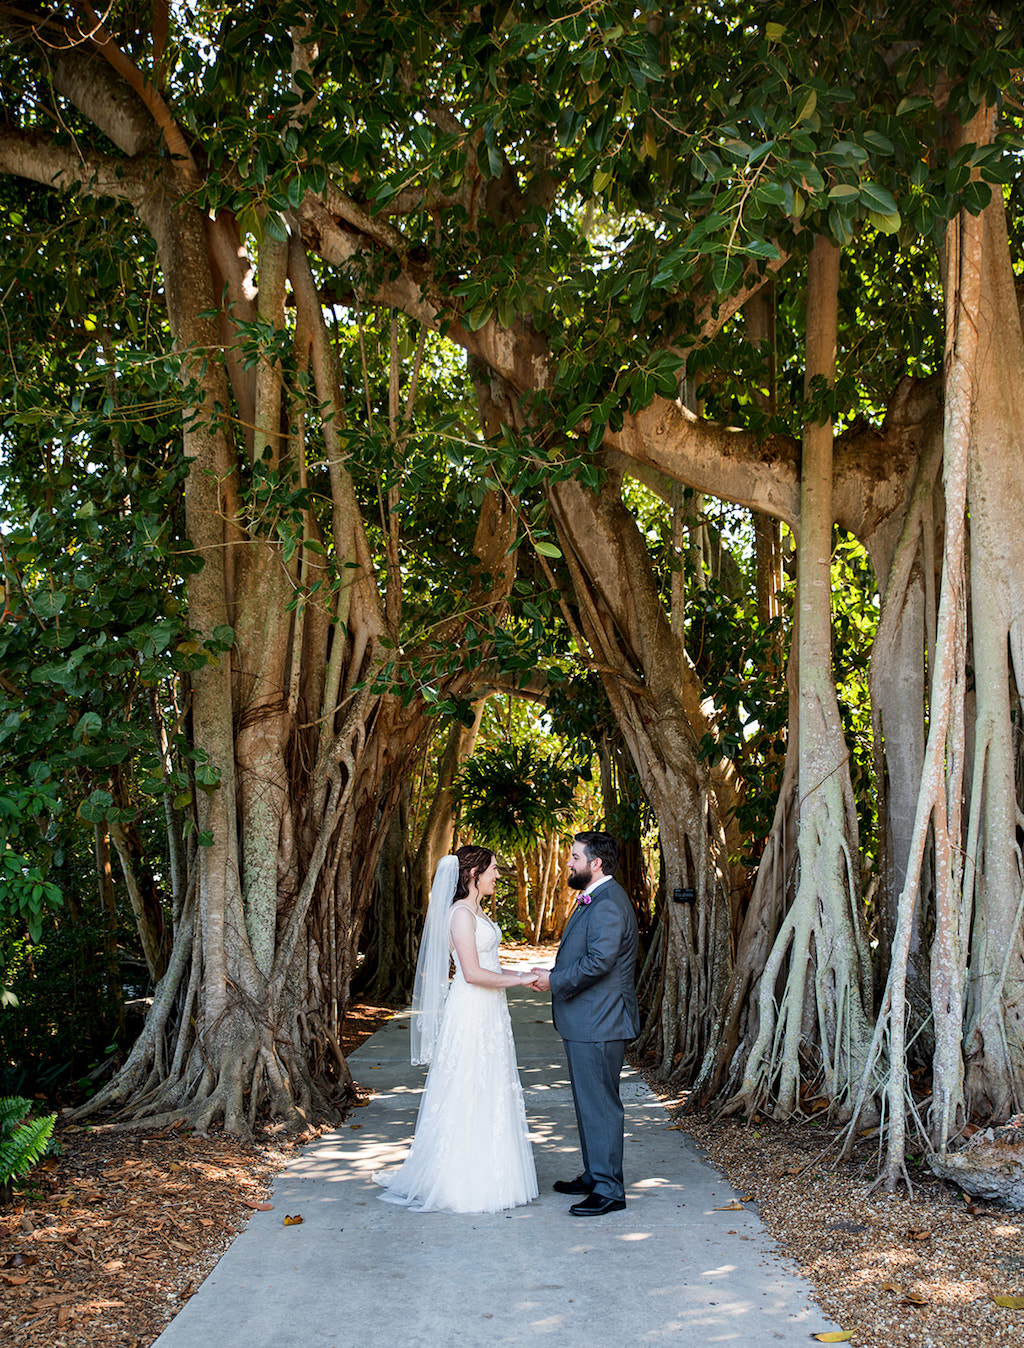 Outdoor Tampa Bay Bride and Groom First Look Wedding Portrait Under Banyan Trees | Sarasota Wedding Venue Marie Selby Botanical Gardens